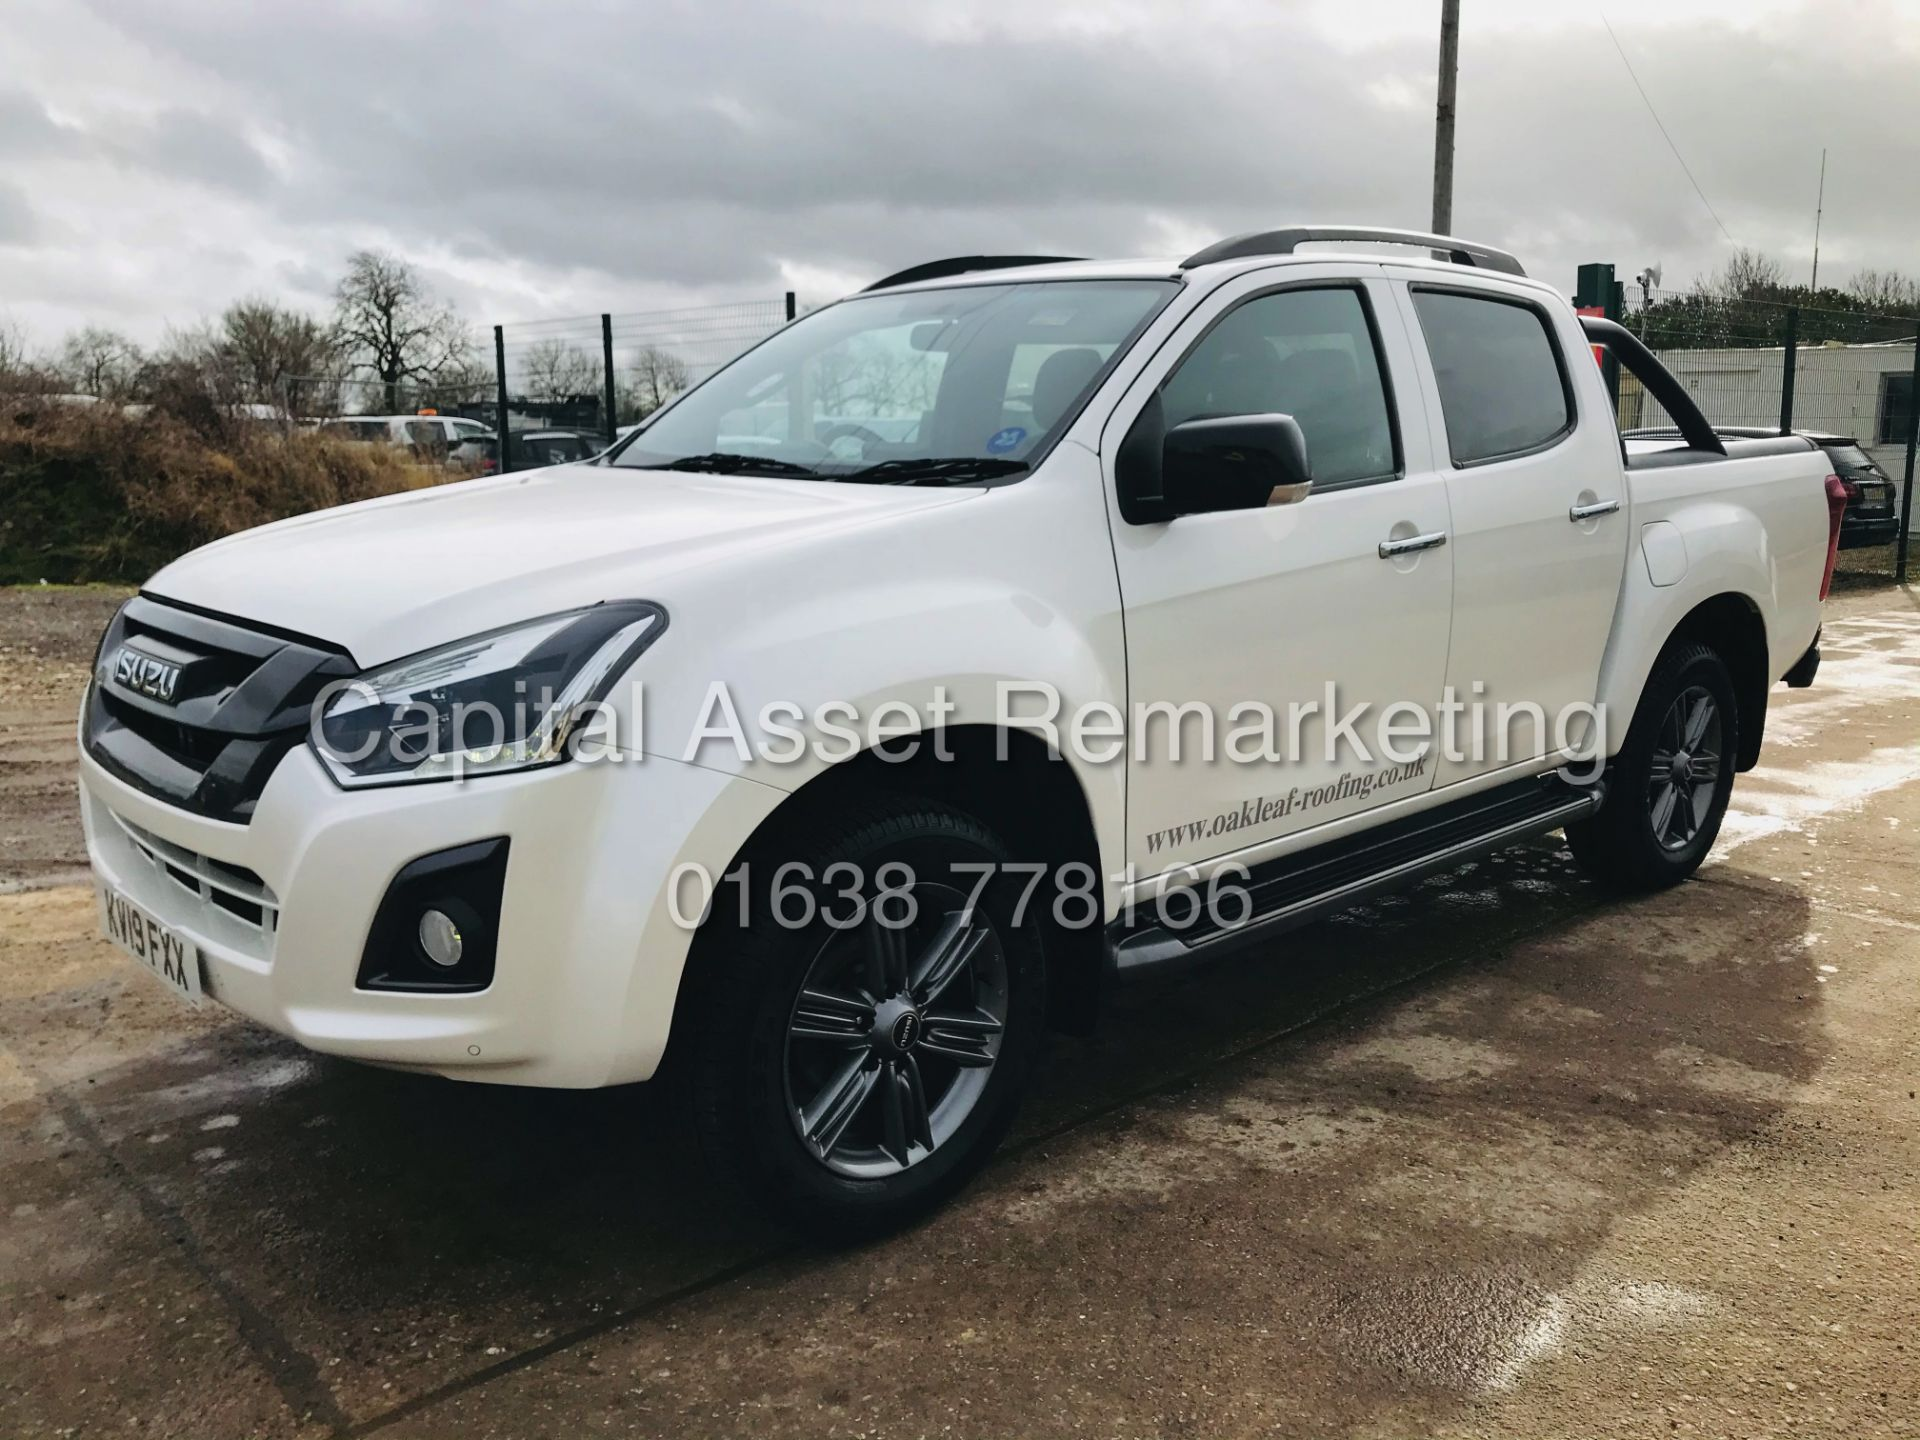 "(On Sale) ISUZU D-MAX ""BLADE"" AUTO - 1 OWNER (2019 - EURO 6) LEATHER - SAT NAV *TOP SPEC* - Image 6 of 34"